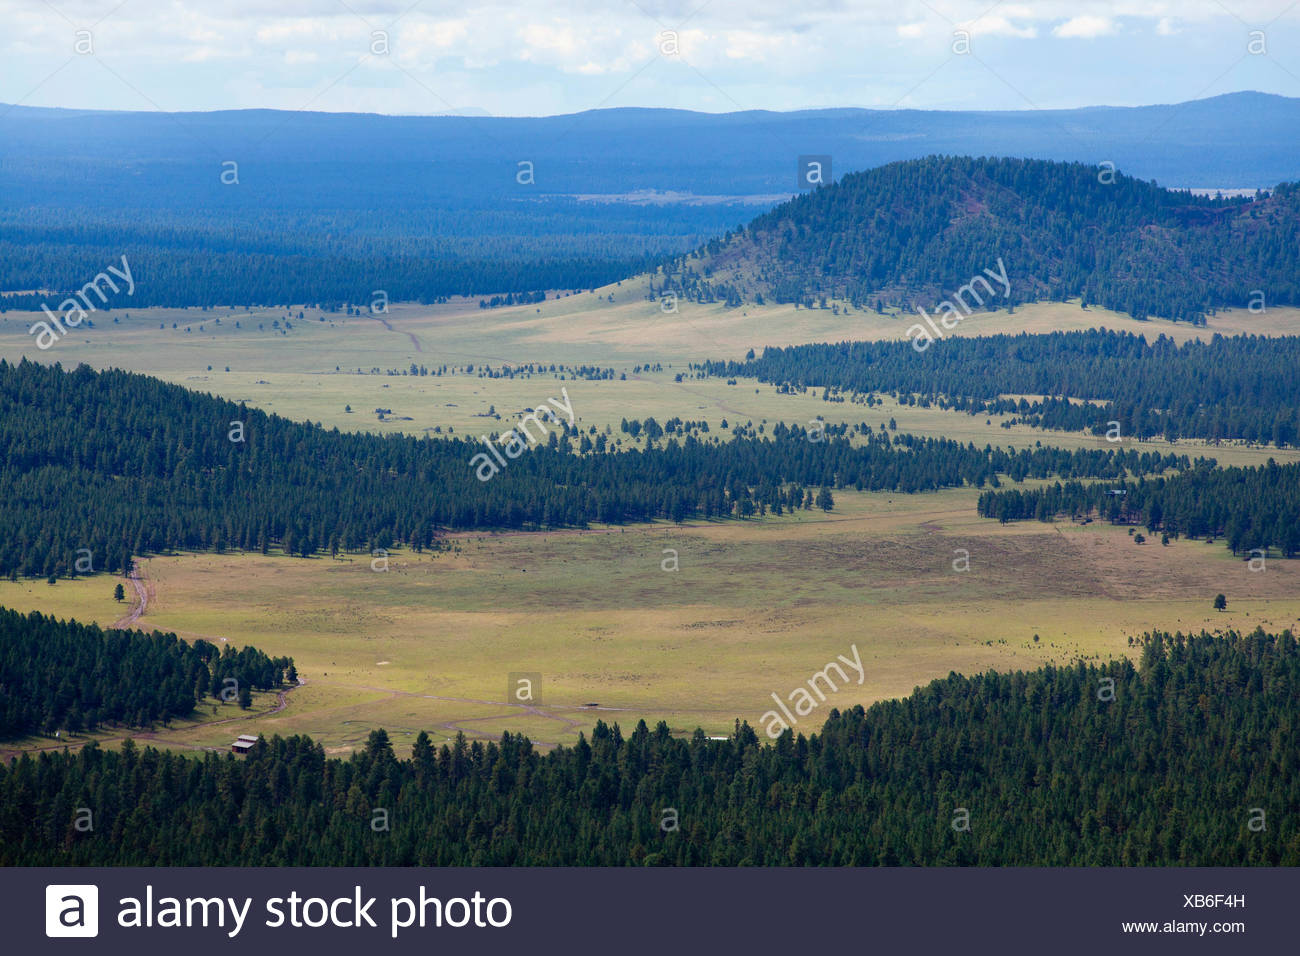 Large meadows as seen from the Kendrick Mountain Trail in the Kaibab National Forest. - Stock Image